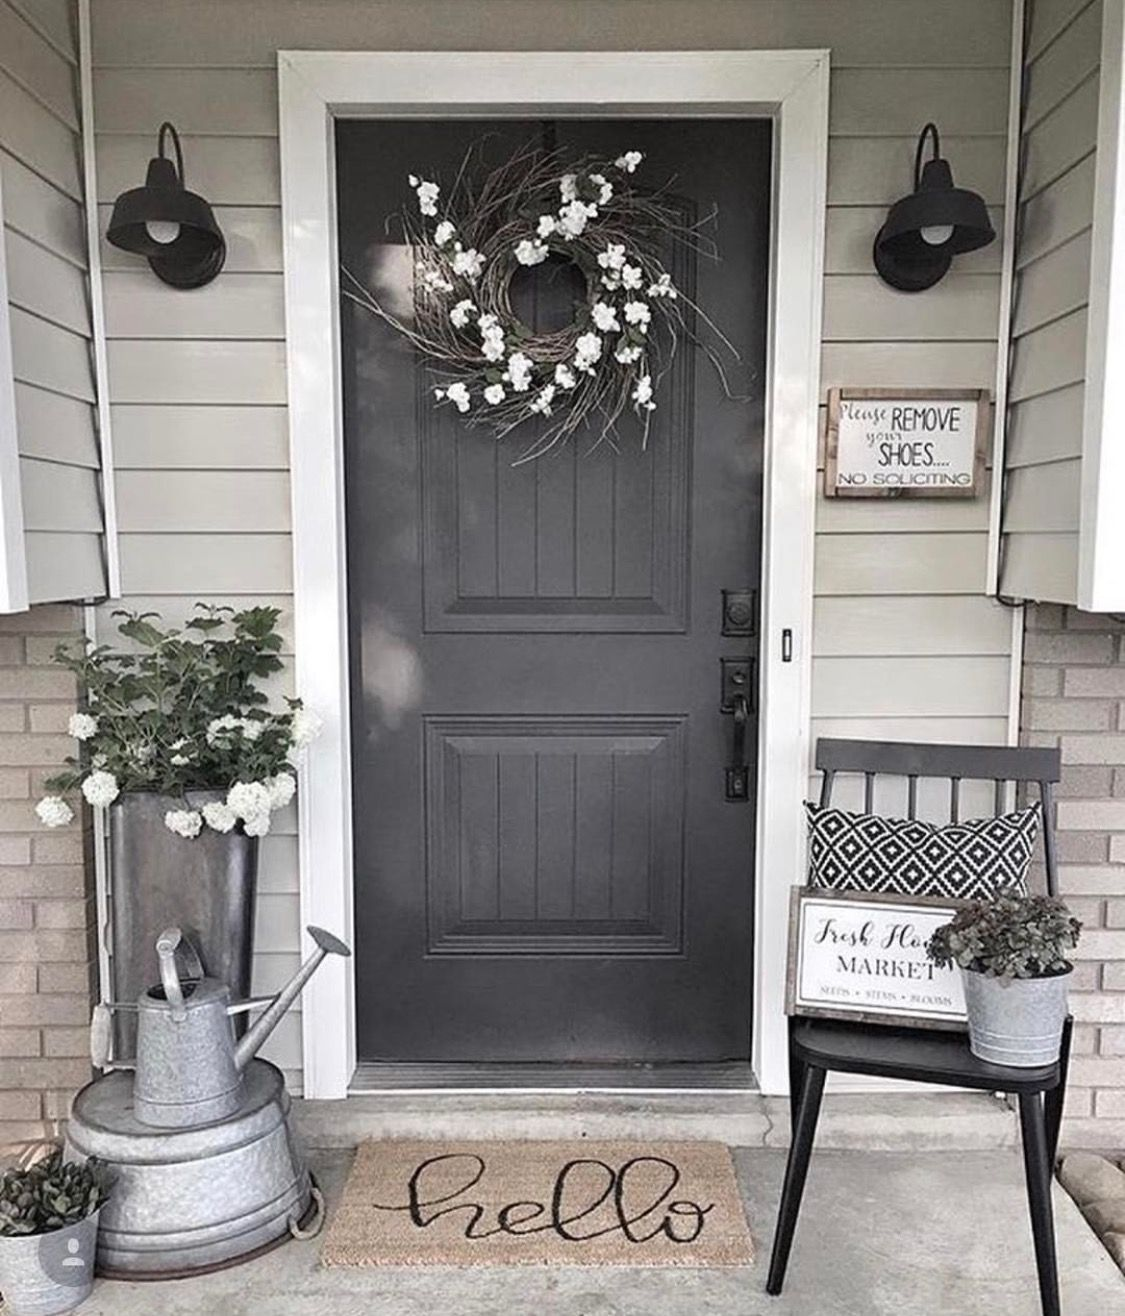 43 Awesome Front Door Farmhouse Entrance Decorating Ideas Small Porch Decorating Front Porch Decorating Farmhouse Front Porches